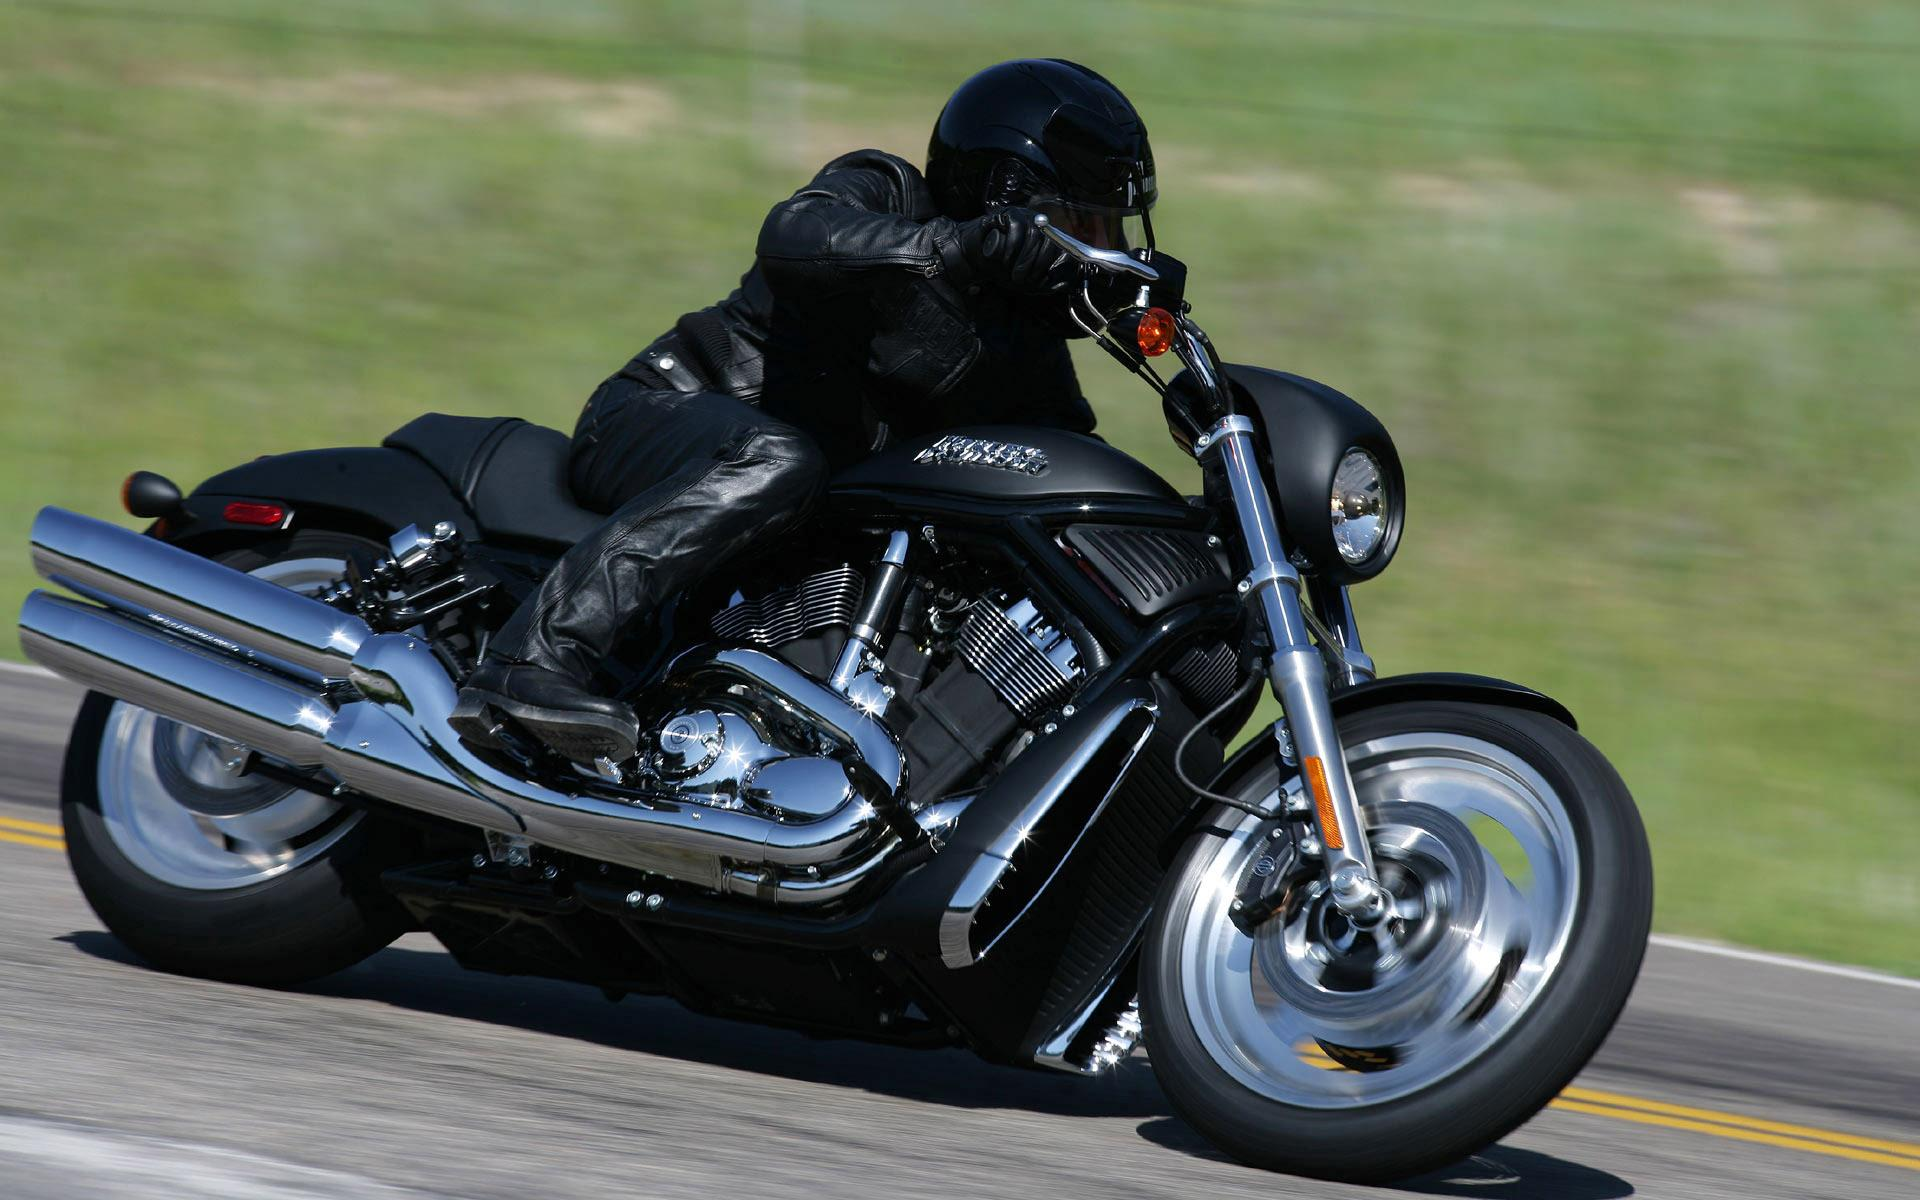 Motorcycle Accidents And What Happens Next